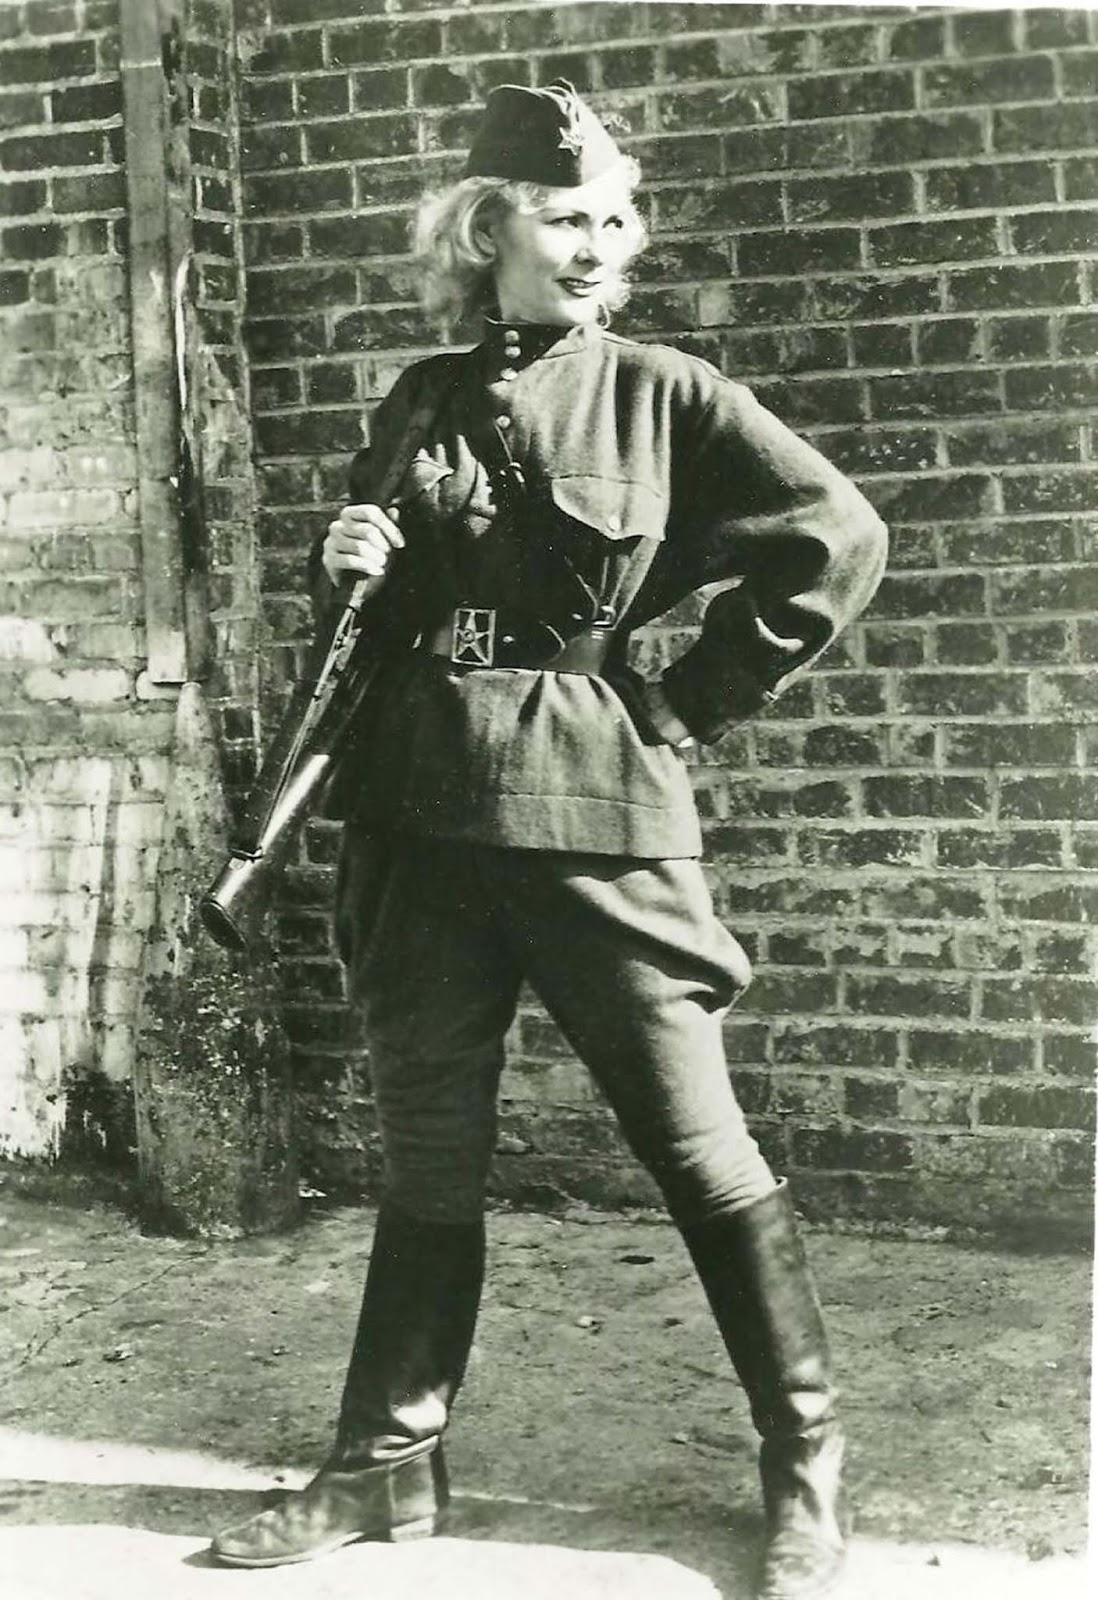 Kyra Petrovskaya was a World War II sniper. She kind of looks like Supergirl in this shot. Tough lady. If you're curious, read more about